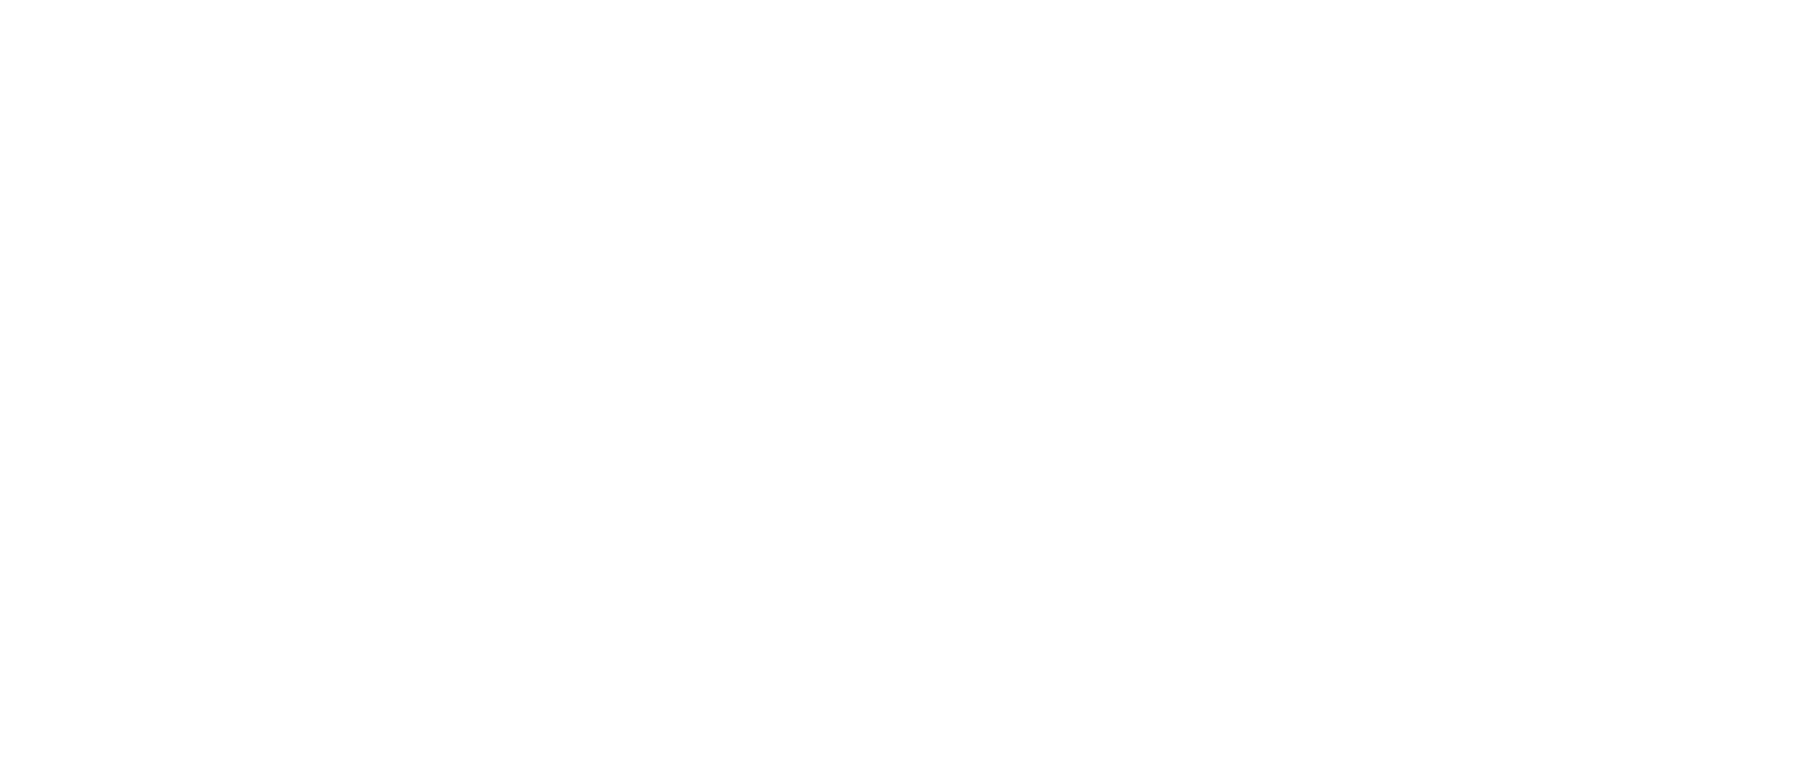 WEXT Radio Logo in White with the radio dial numbers 97.7 and 106.1 with a circular design element in between them